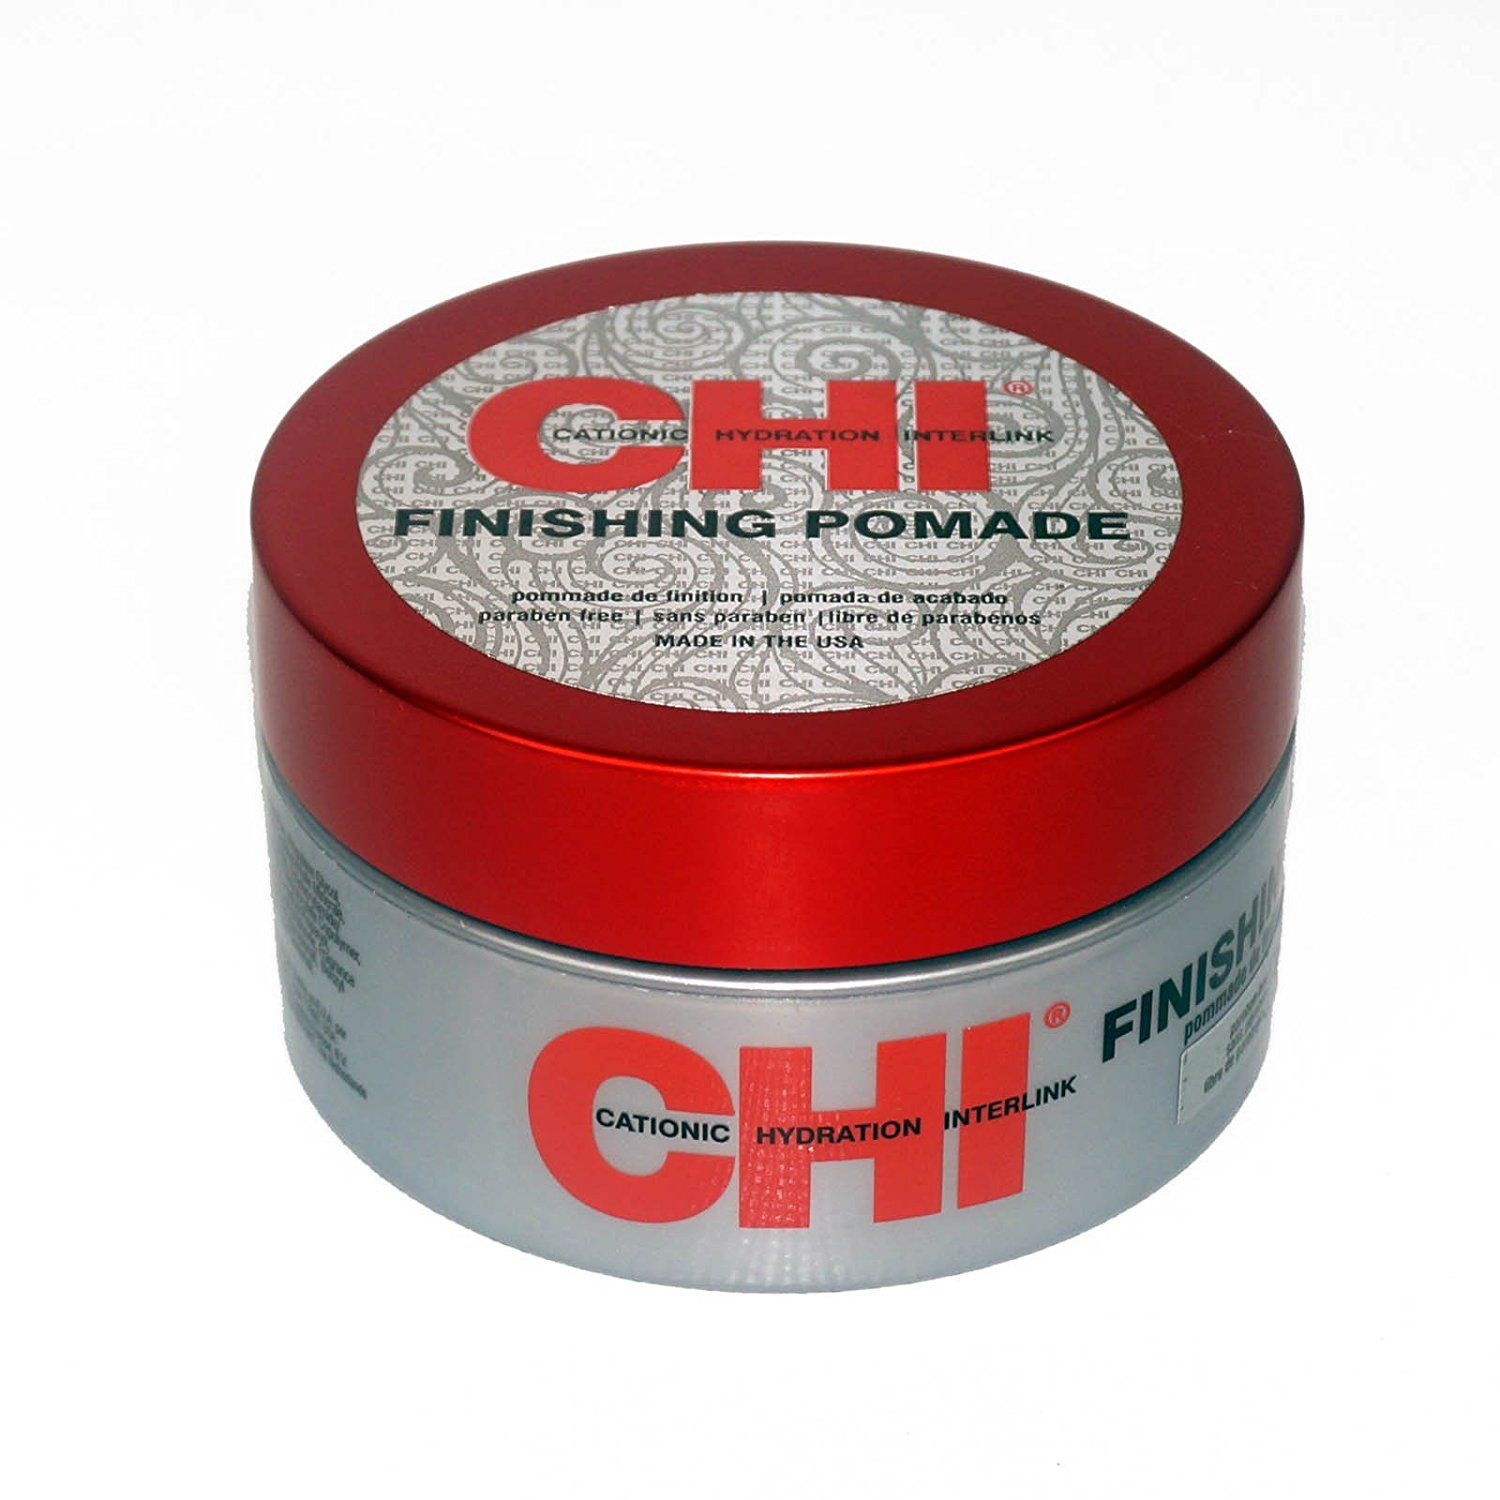 CHI Cationic Hydration Interlink Finishing Pomade ** This